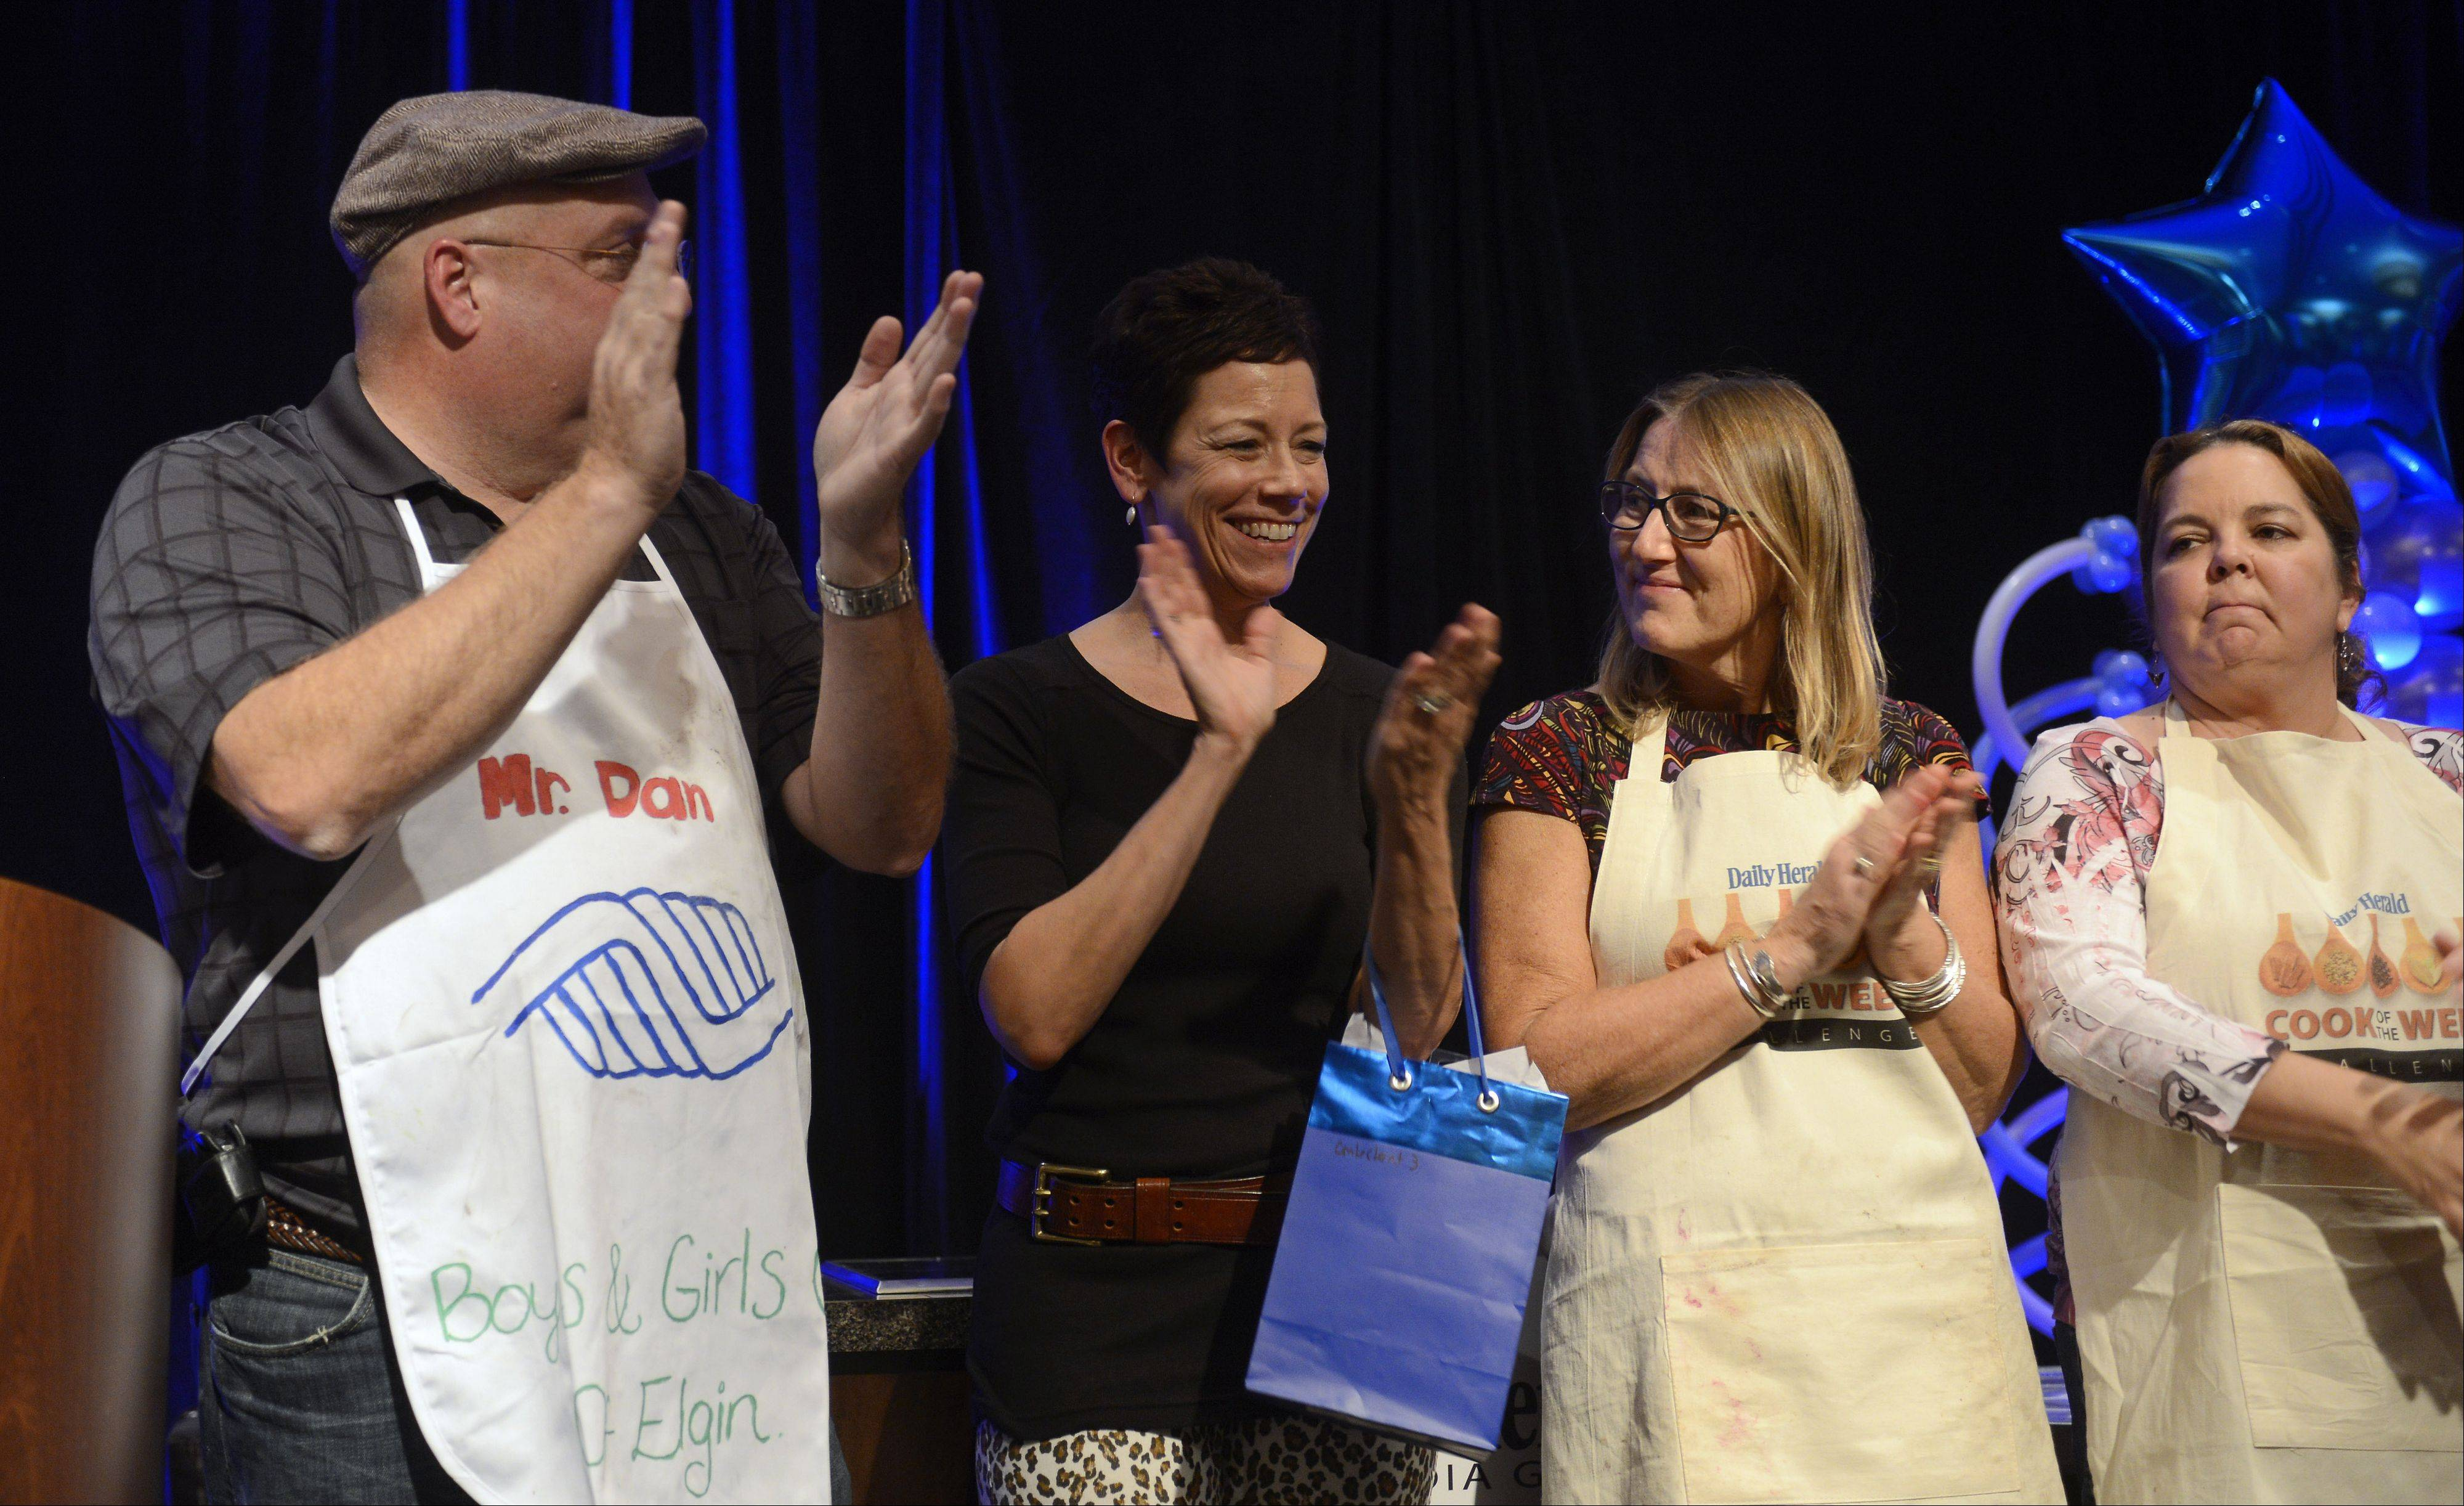 Lori Motyka of West Chicago, second from left, claps her hands after being announced the runner-up during the Daily Herald Cook of the Week Cookoff finals, held at the Hyatt Regency Schaumburg Wednesday. With her on stage are fellow contestants Dan Rich, Christine Murphy and Lori Wiktorek.